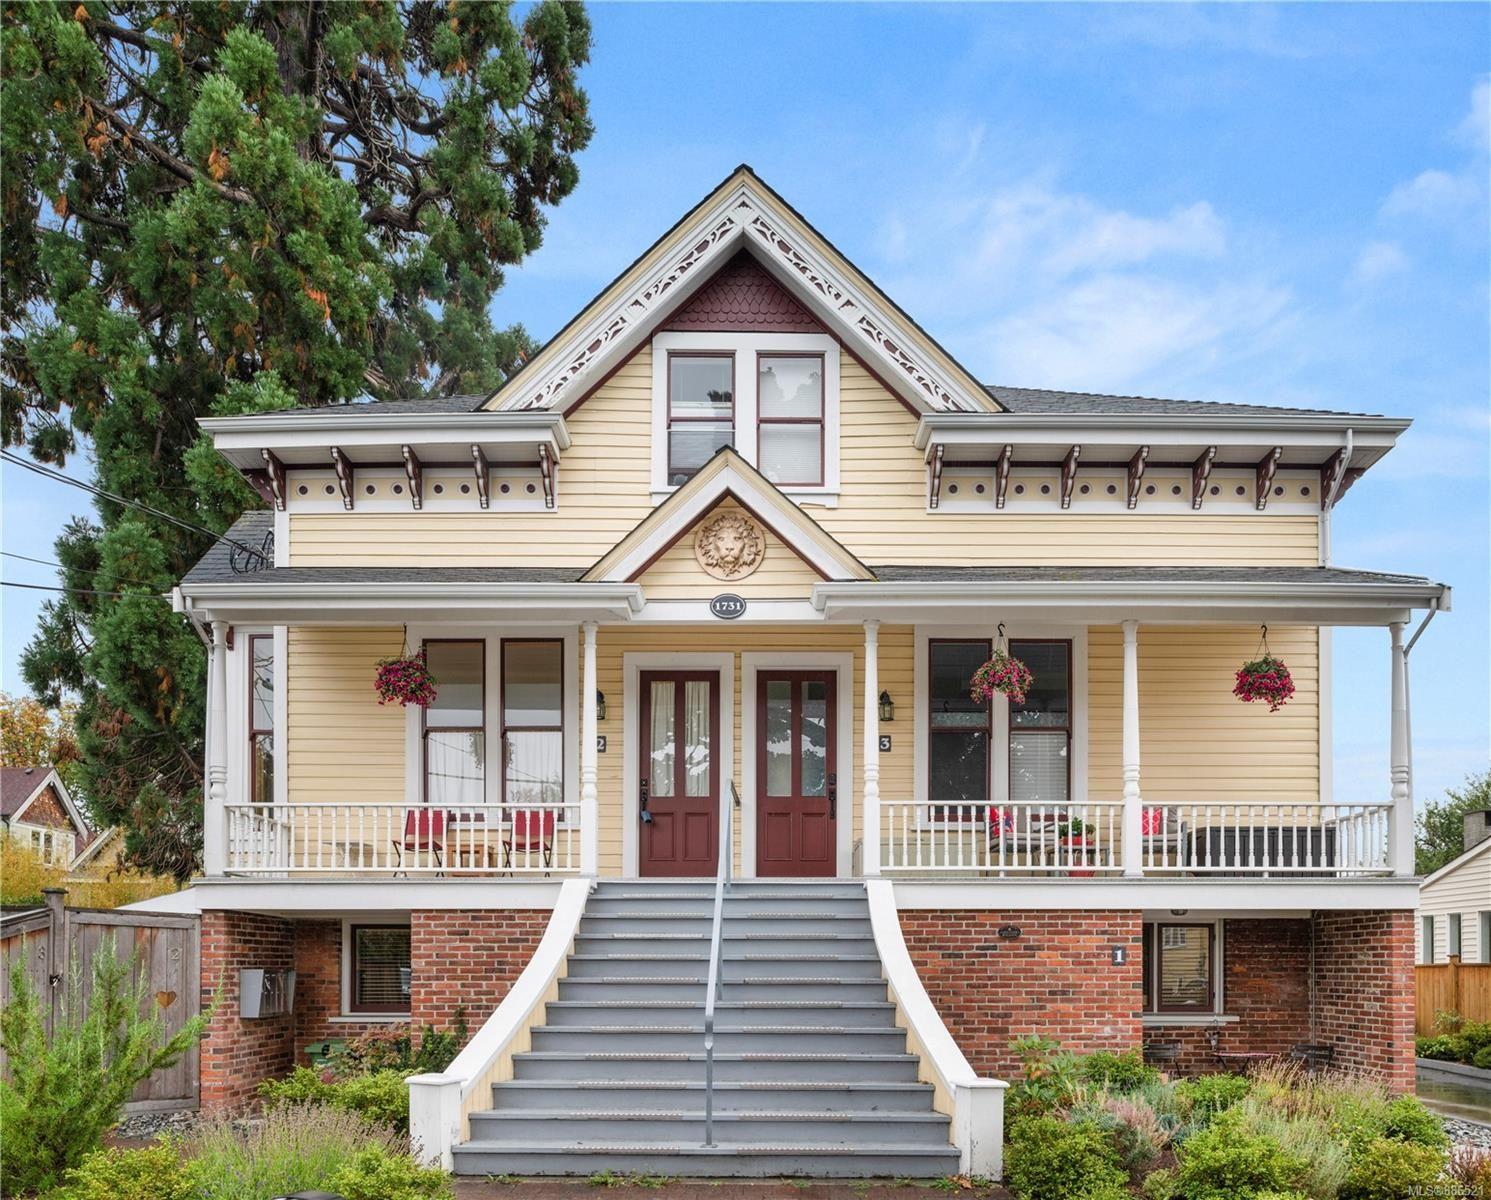 Main Photo: 2 1731 Albert Ave in Victoria: Vi Jubilee Row/Townhouse for sale : MLS®# 886521